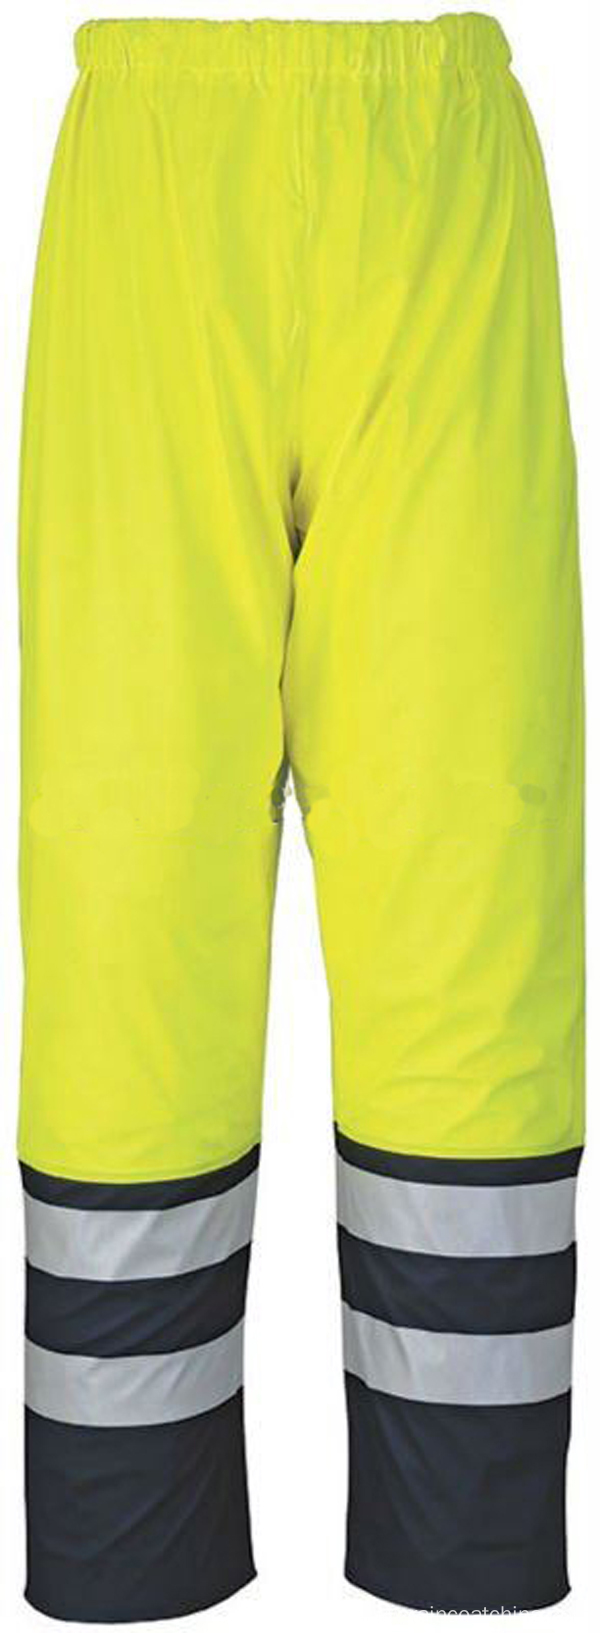 High Visibility Rain Jacket with Hi-Vis Reflective